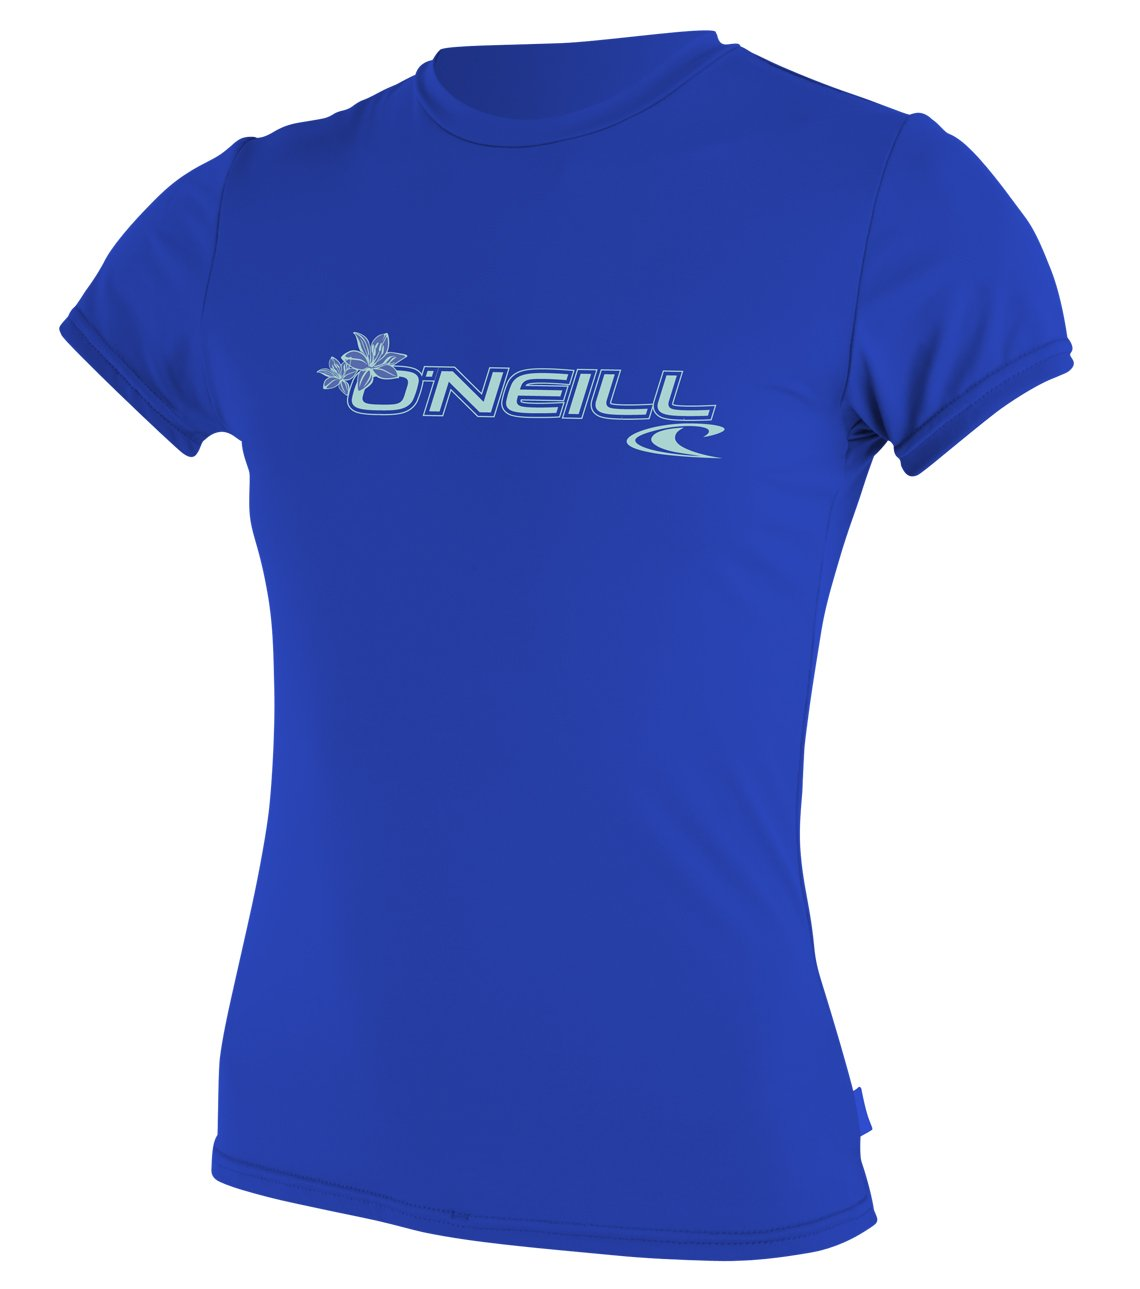 O'Neill  Women's Basic Skins Upf 50+ Short Sleeve Sun Shirt, Tahitian Blue, Small by O'Neill Wetsuits